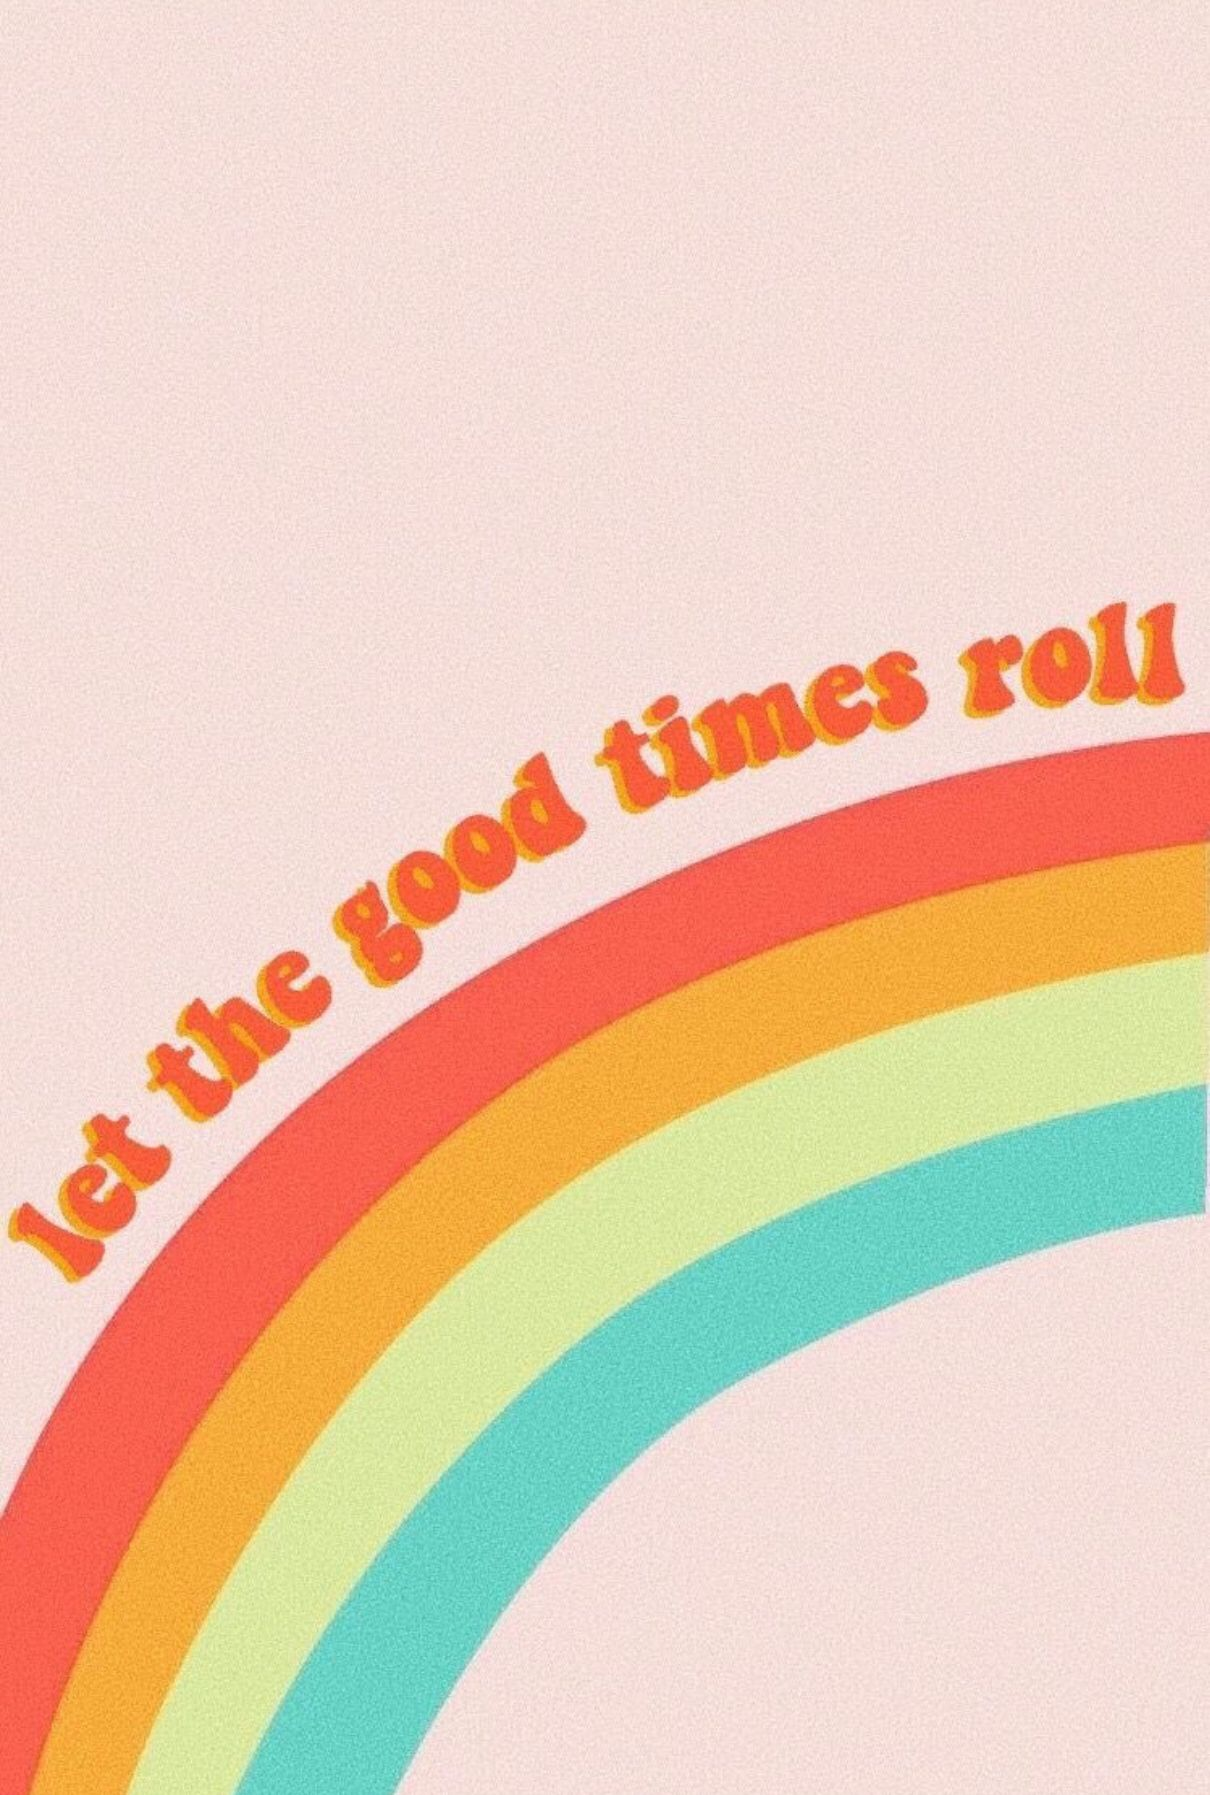 Let The Good Times Roll Wallpaper Quotes Quote